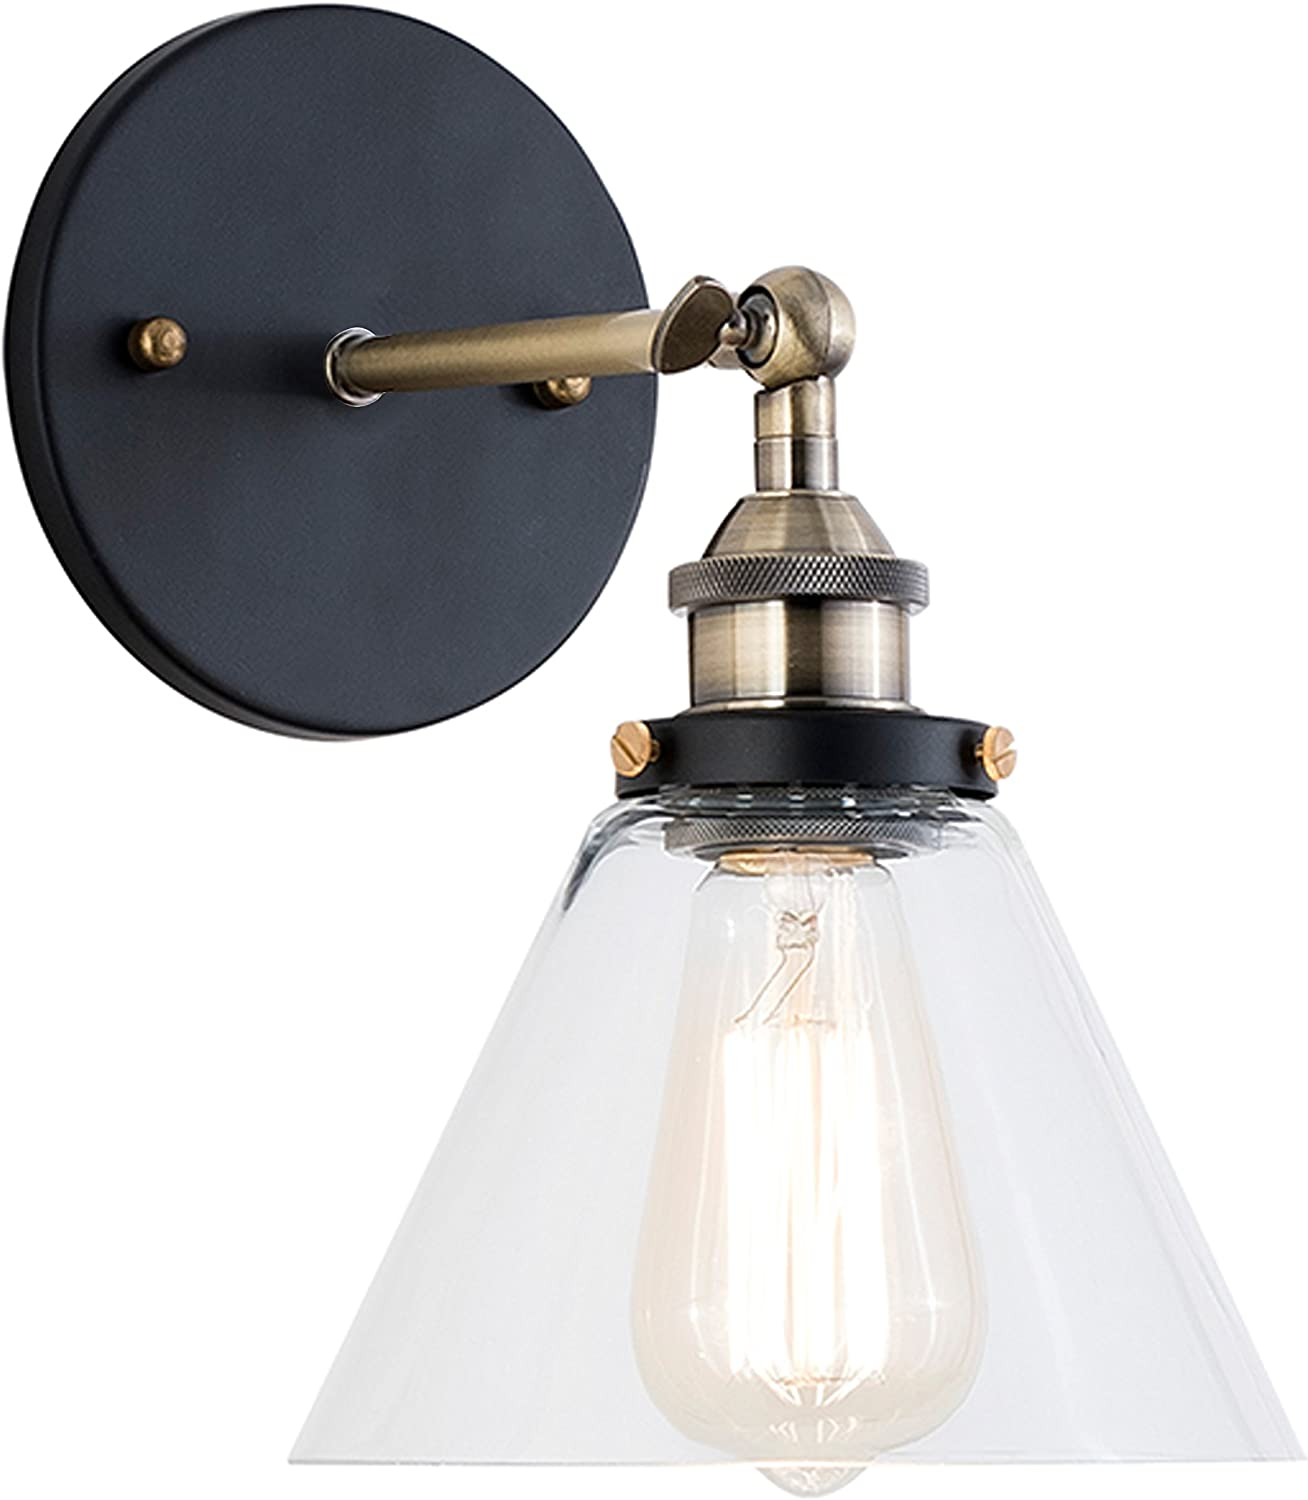 Light Society Cruz Wall Sconce, Clear Glass Shade with Antique Brass Finish, Vintage Modern Industrial Farmhouse Lighting Fixture (LS-W129)